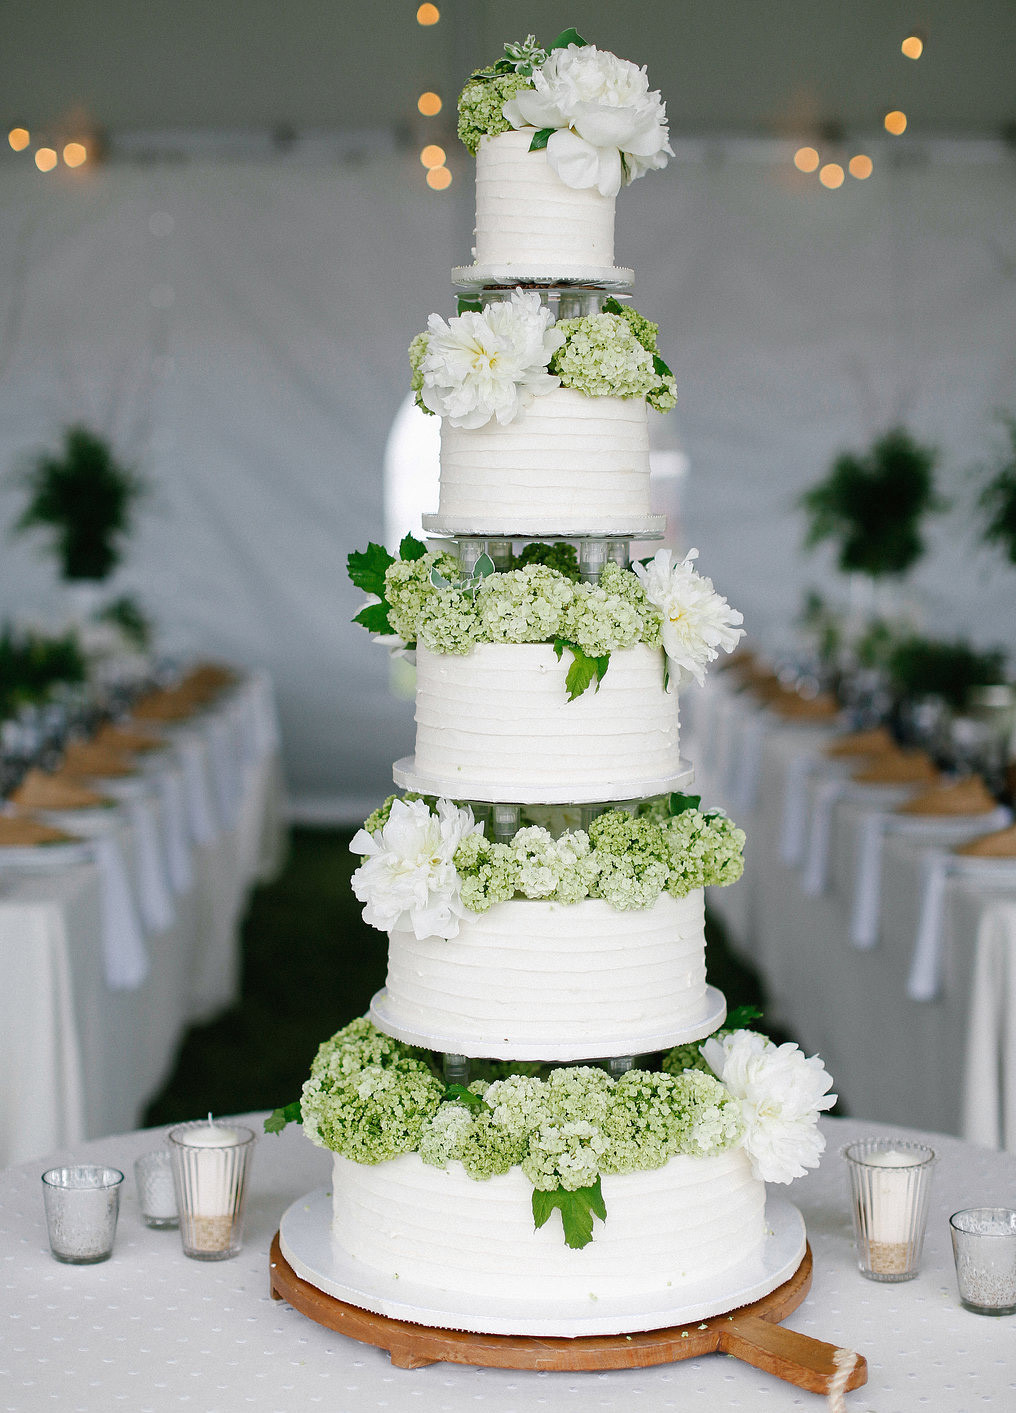 Wedding Cakes With Real Flowers  Wedding cake real flowers idea in 2017